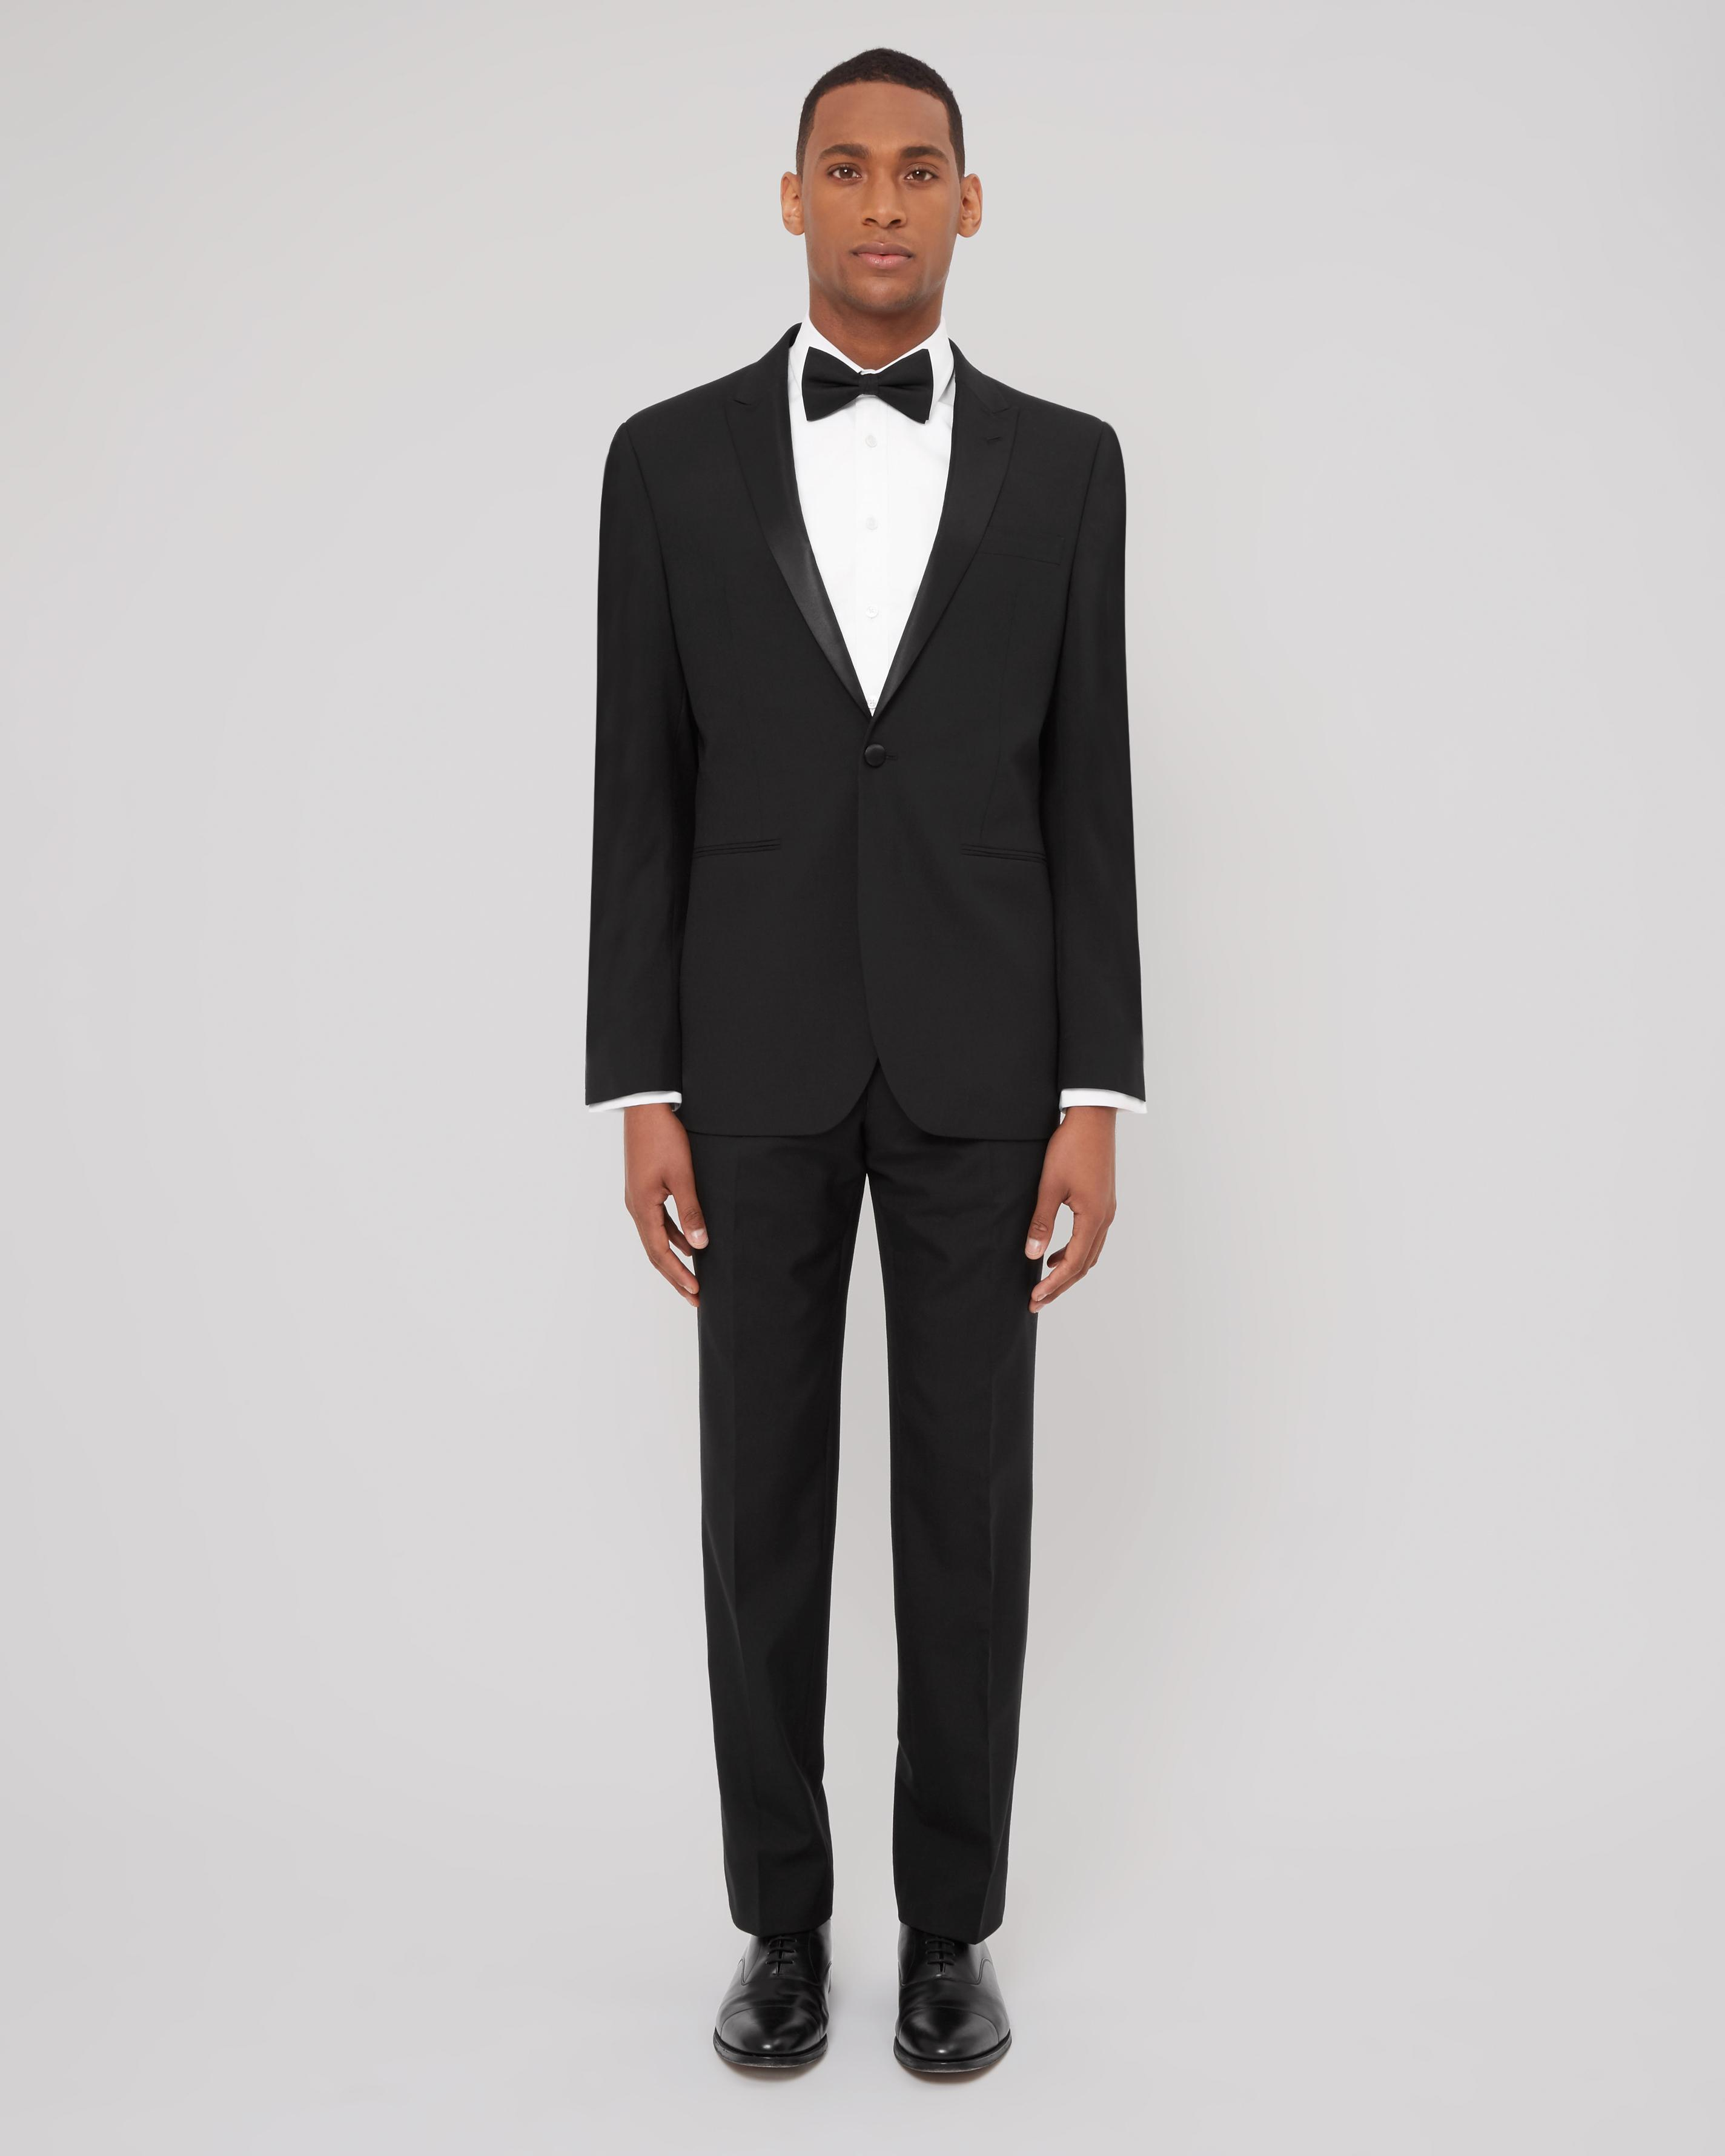 Traditional black-tie Lowland dress is a variant of the normal black tie that includes tartan trews rather than the usual trousers and may include a suitable kilt jacket instead of the dinner jacket. Trews are often worn in summer and warm climes.